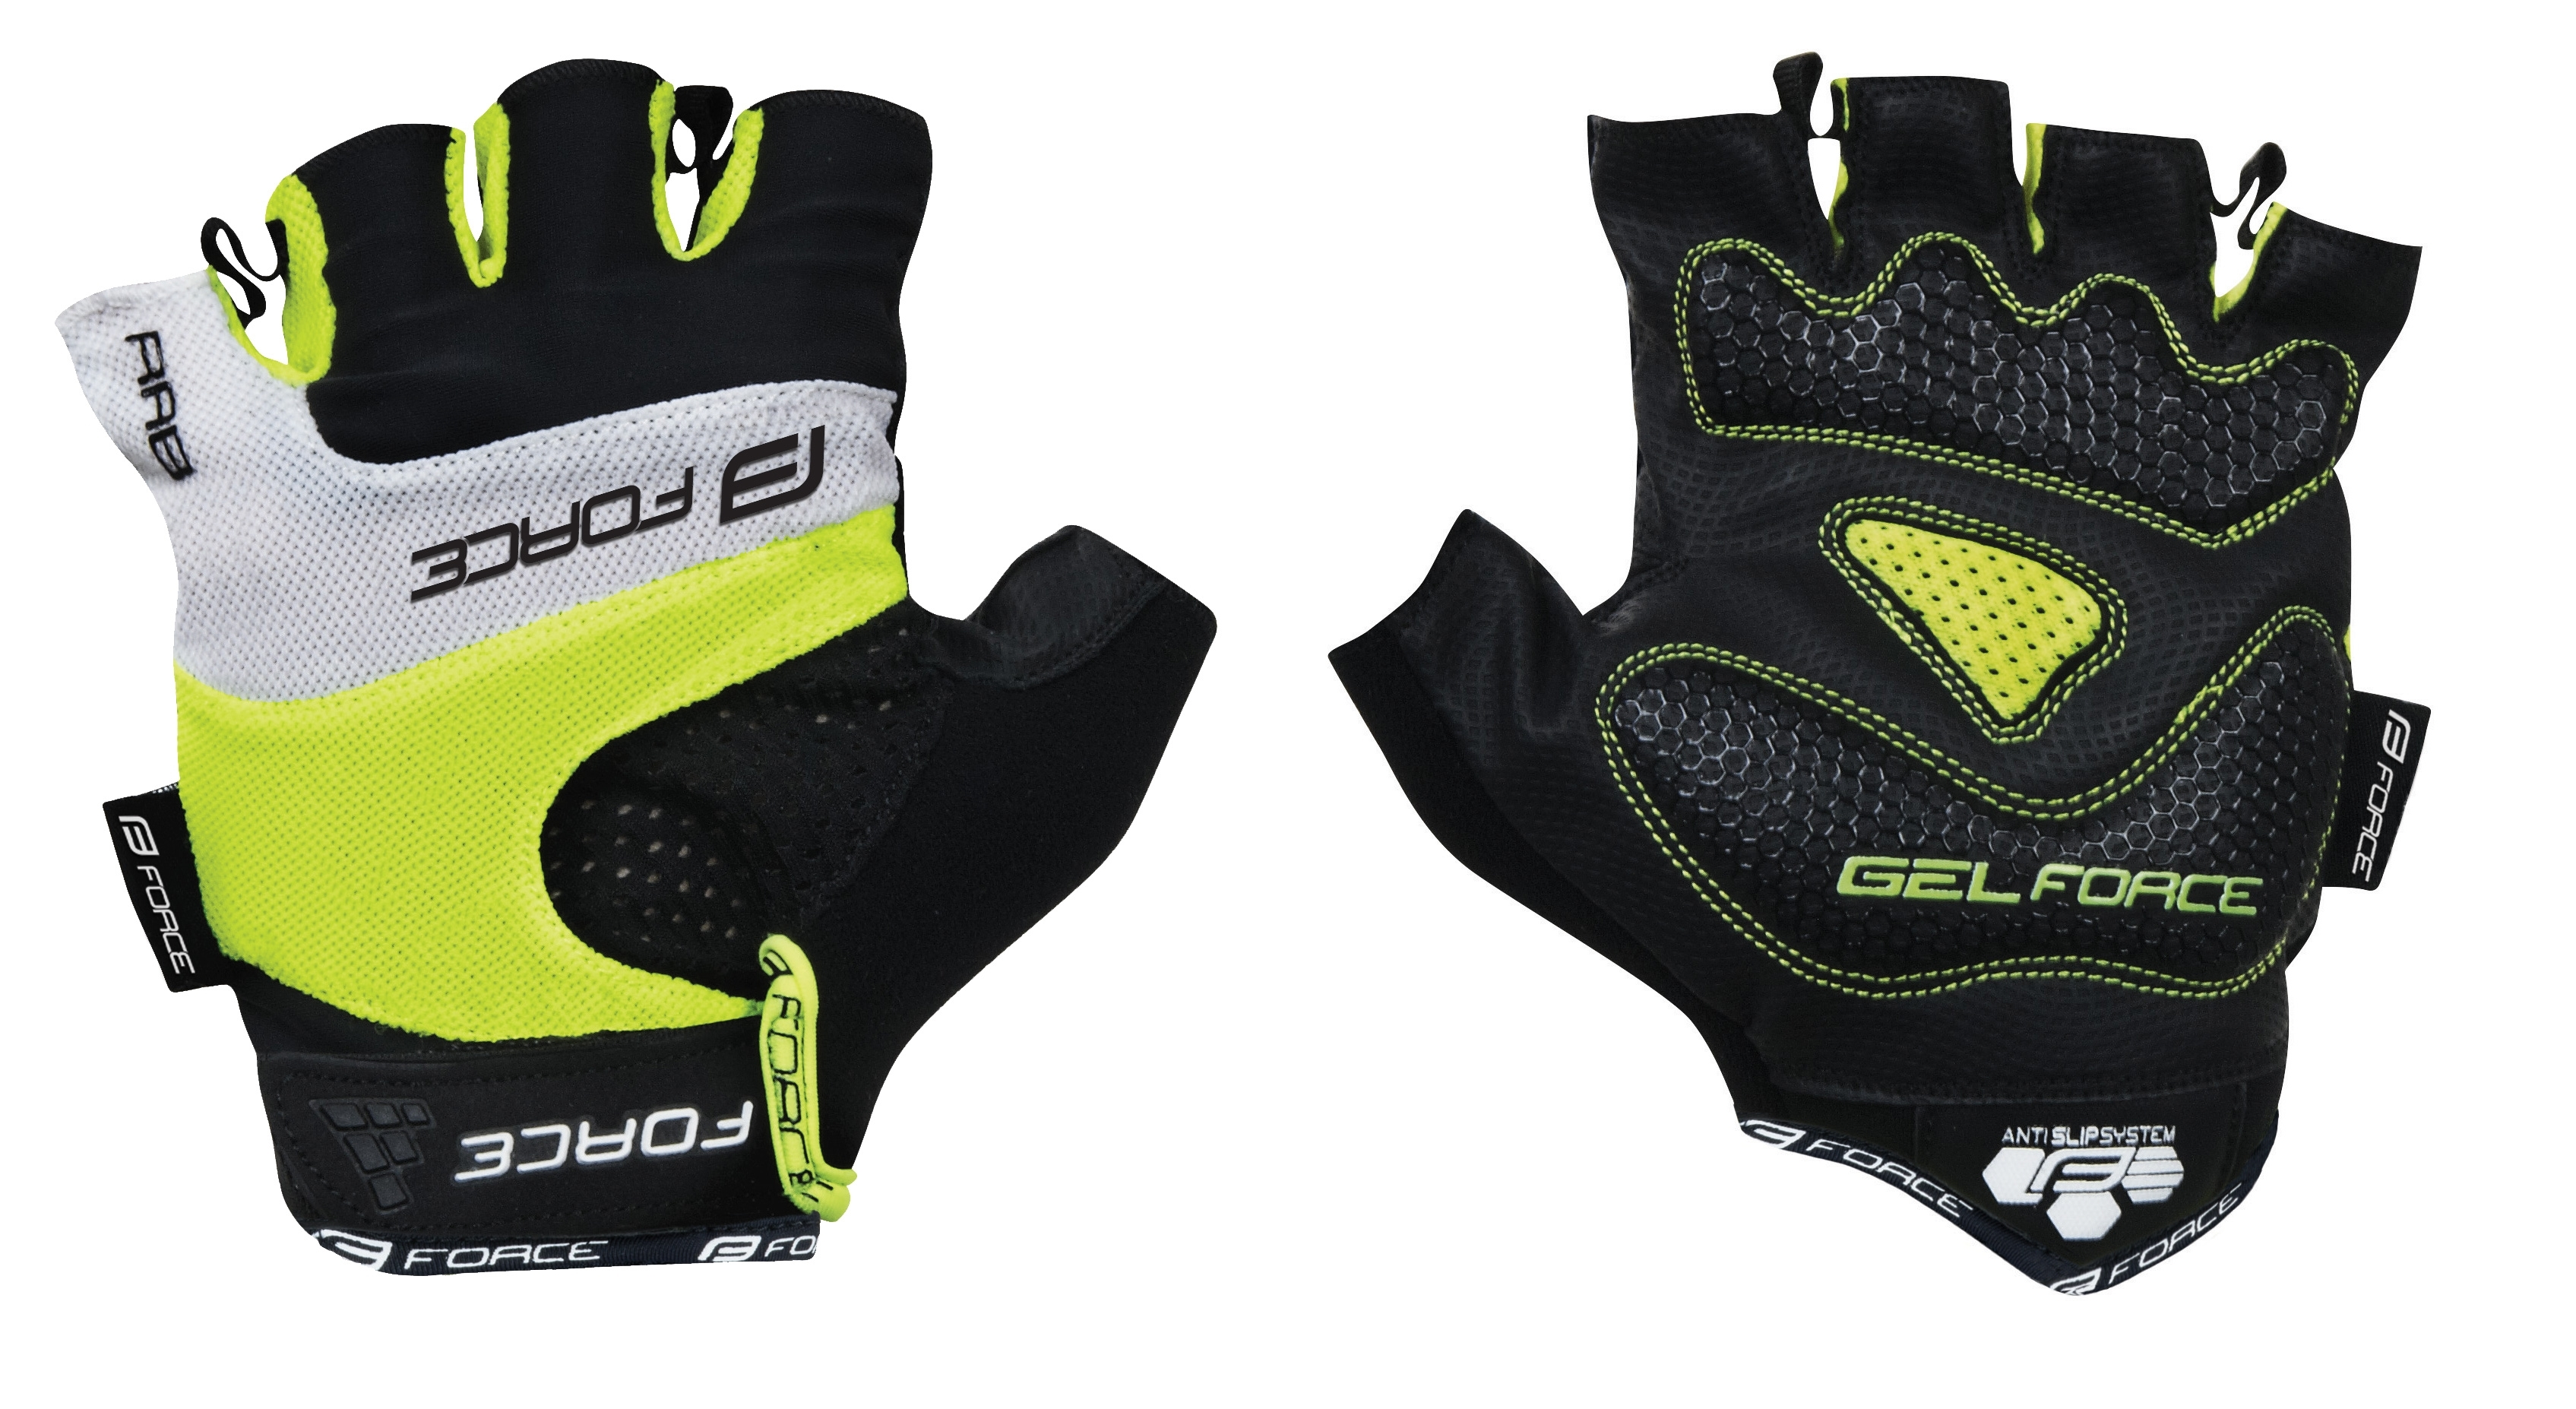 rukavice FORCE RAB gel, fluo